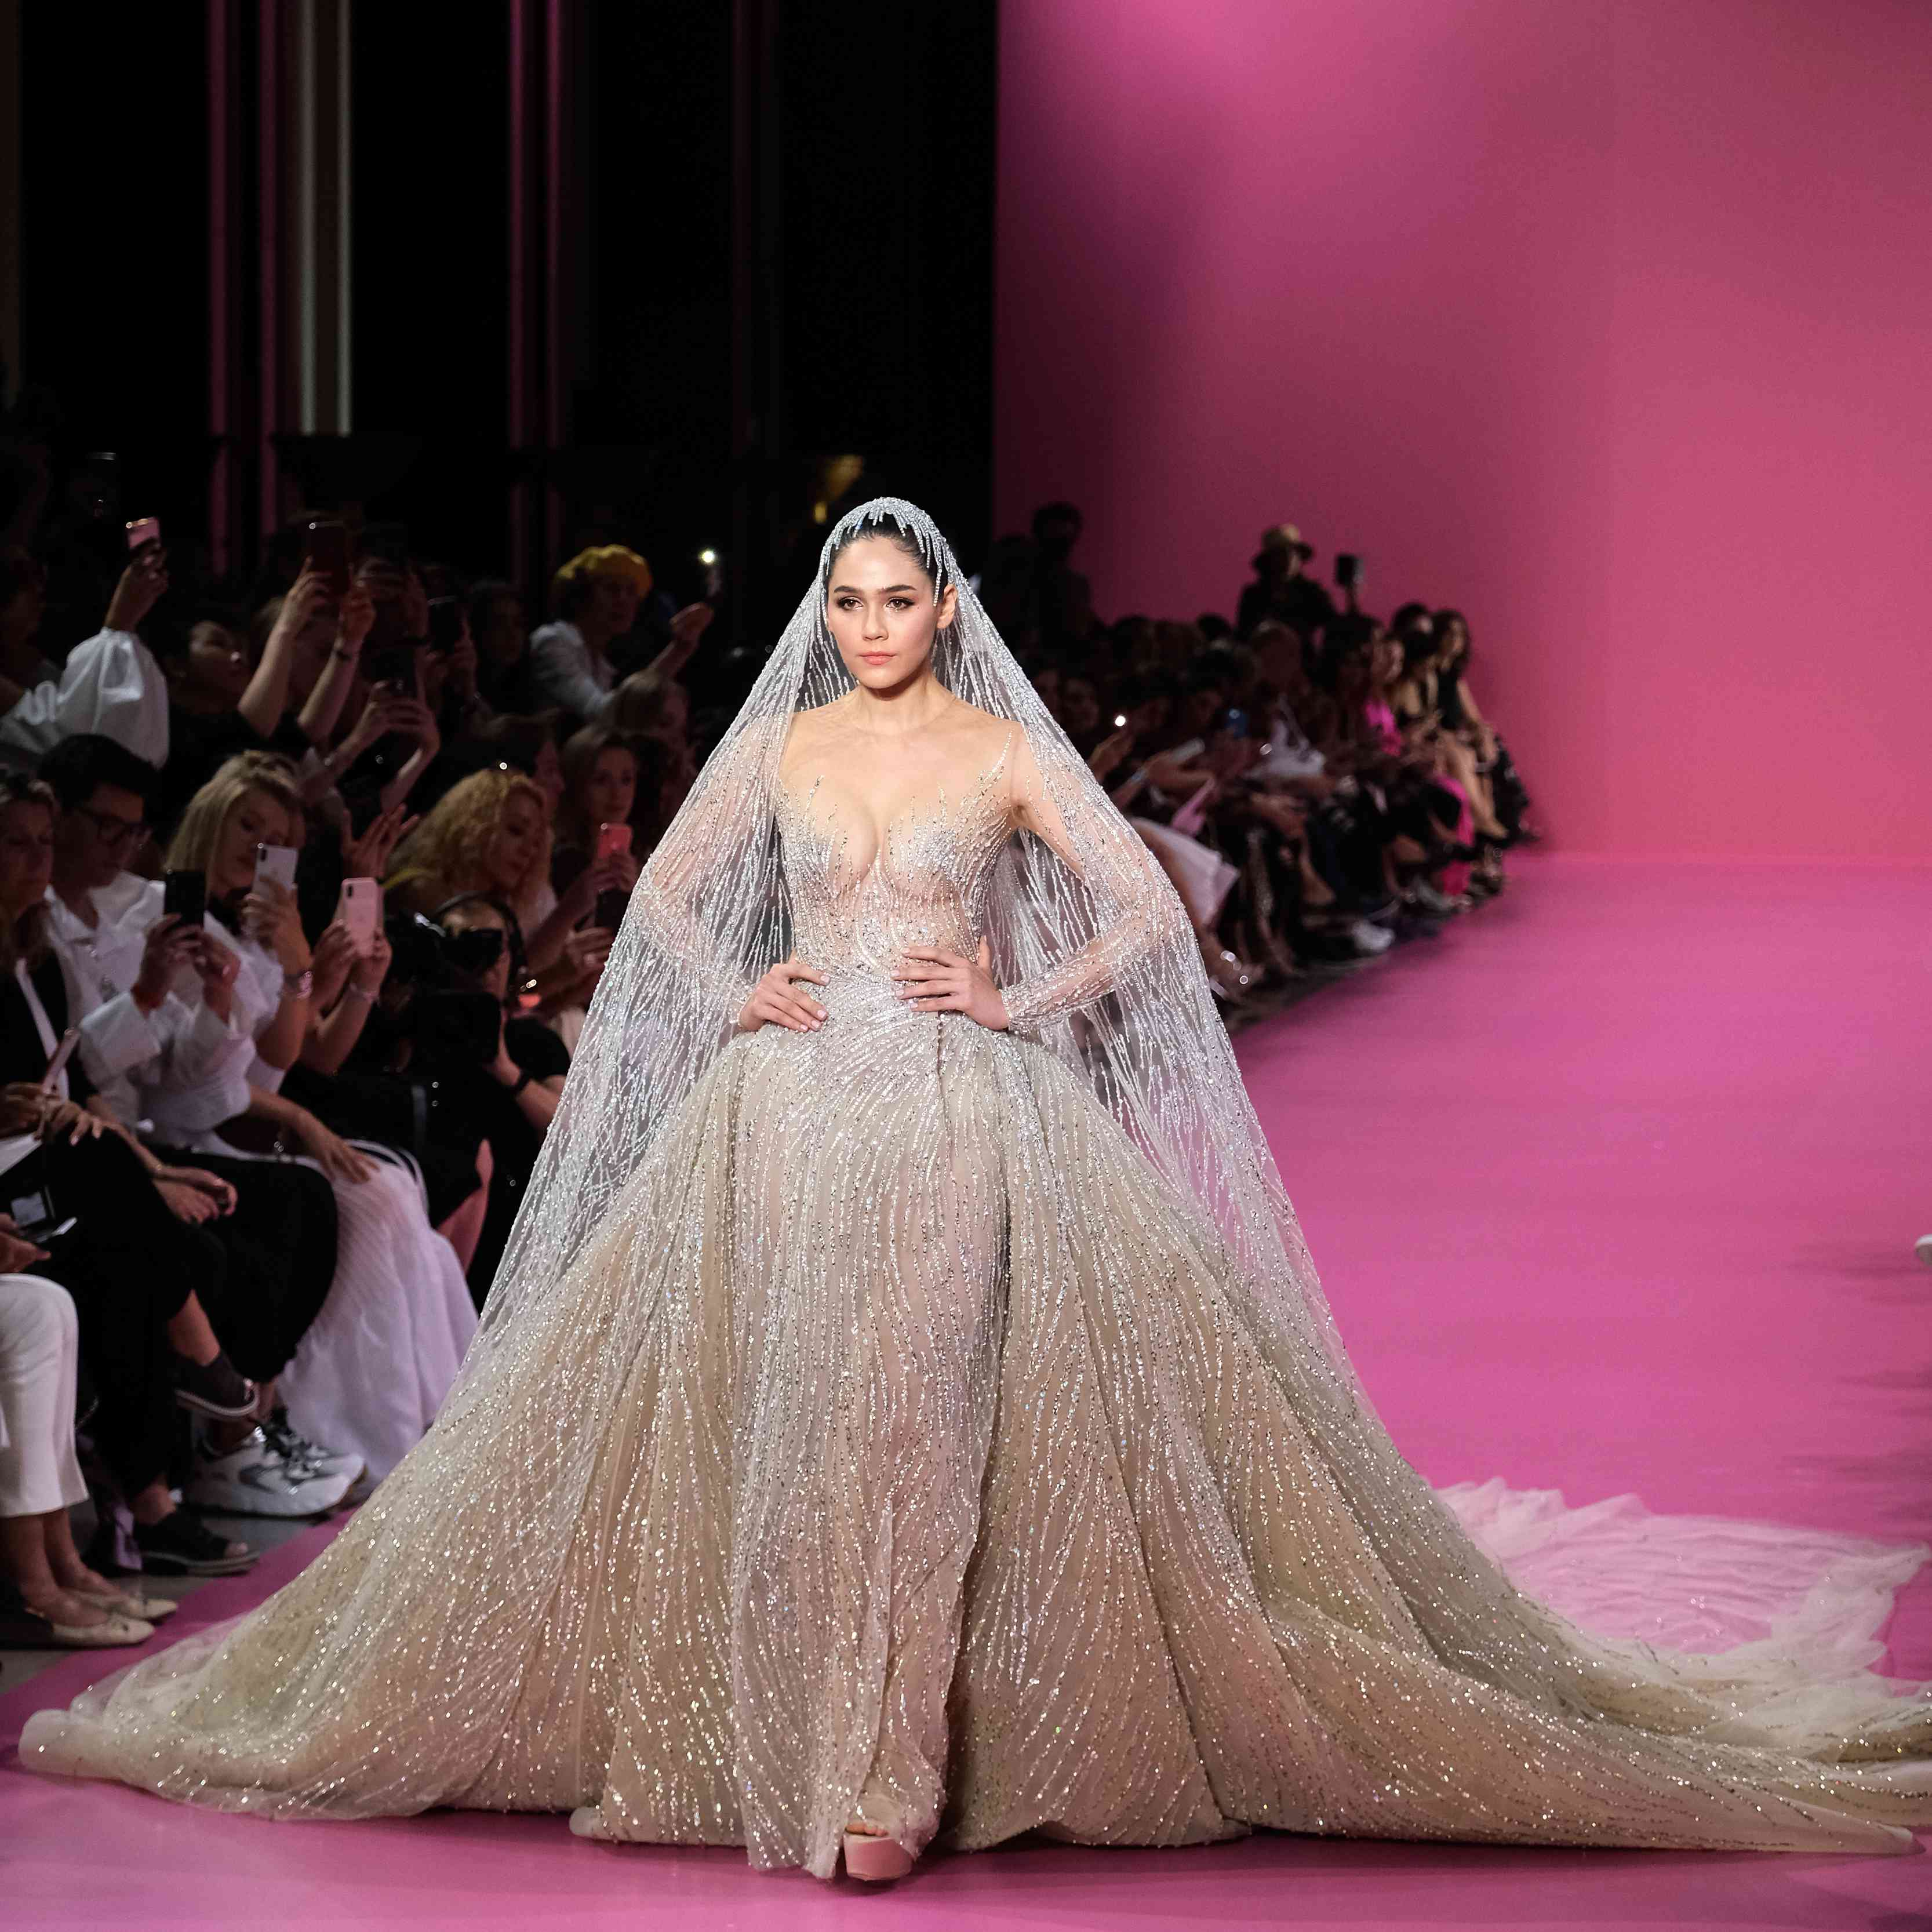 Model in gold princess gown with large skirt and long veil